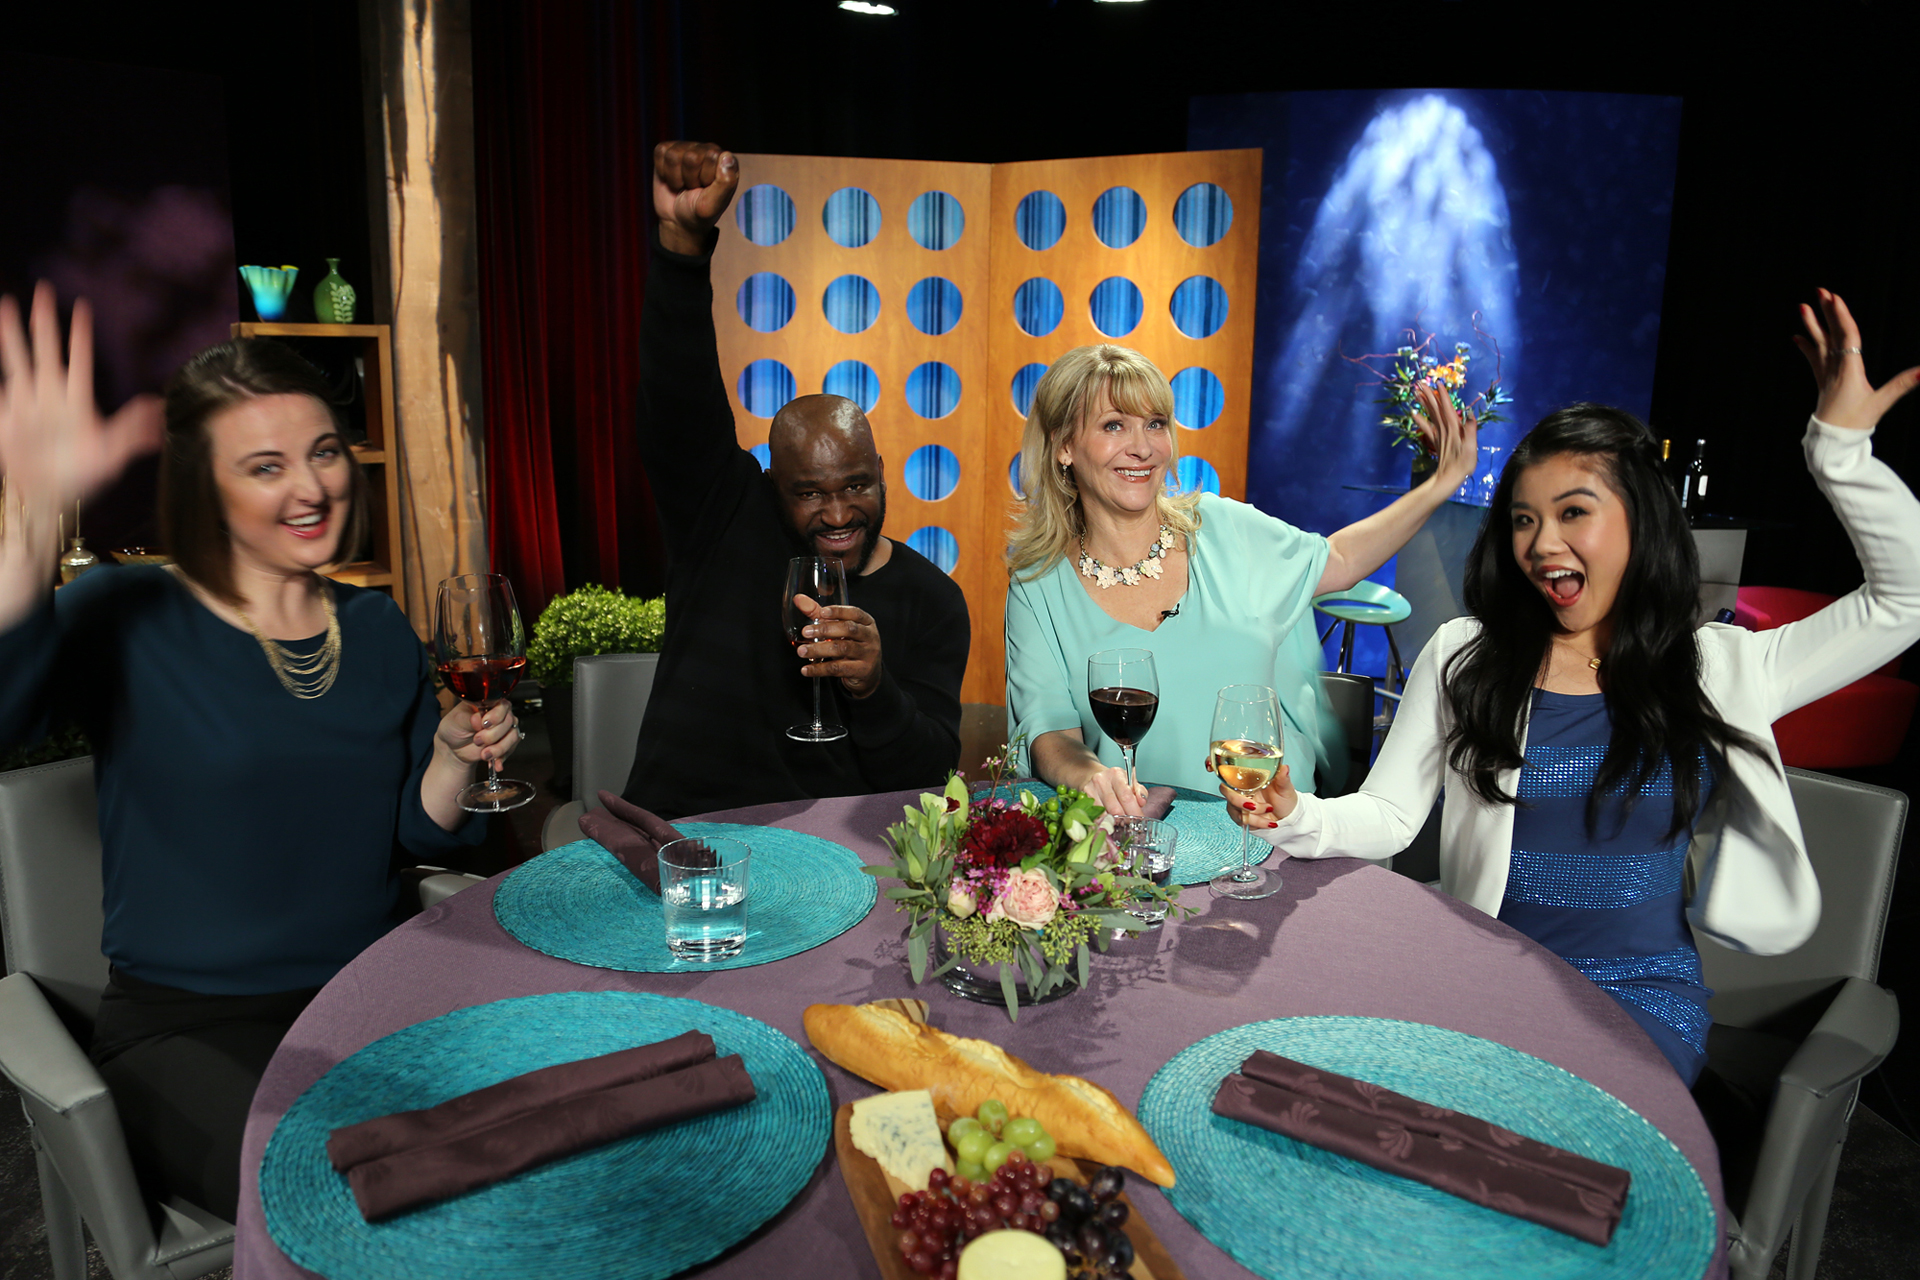 Host Leslie Sbrocco and guests having fun on the set of season 12 episode 3.